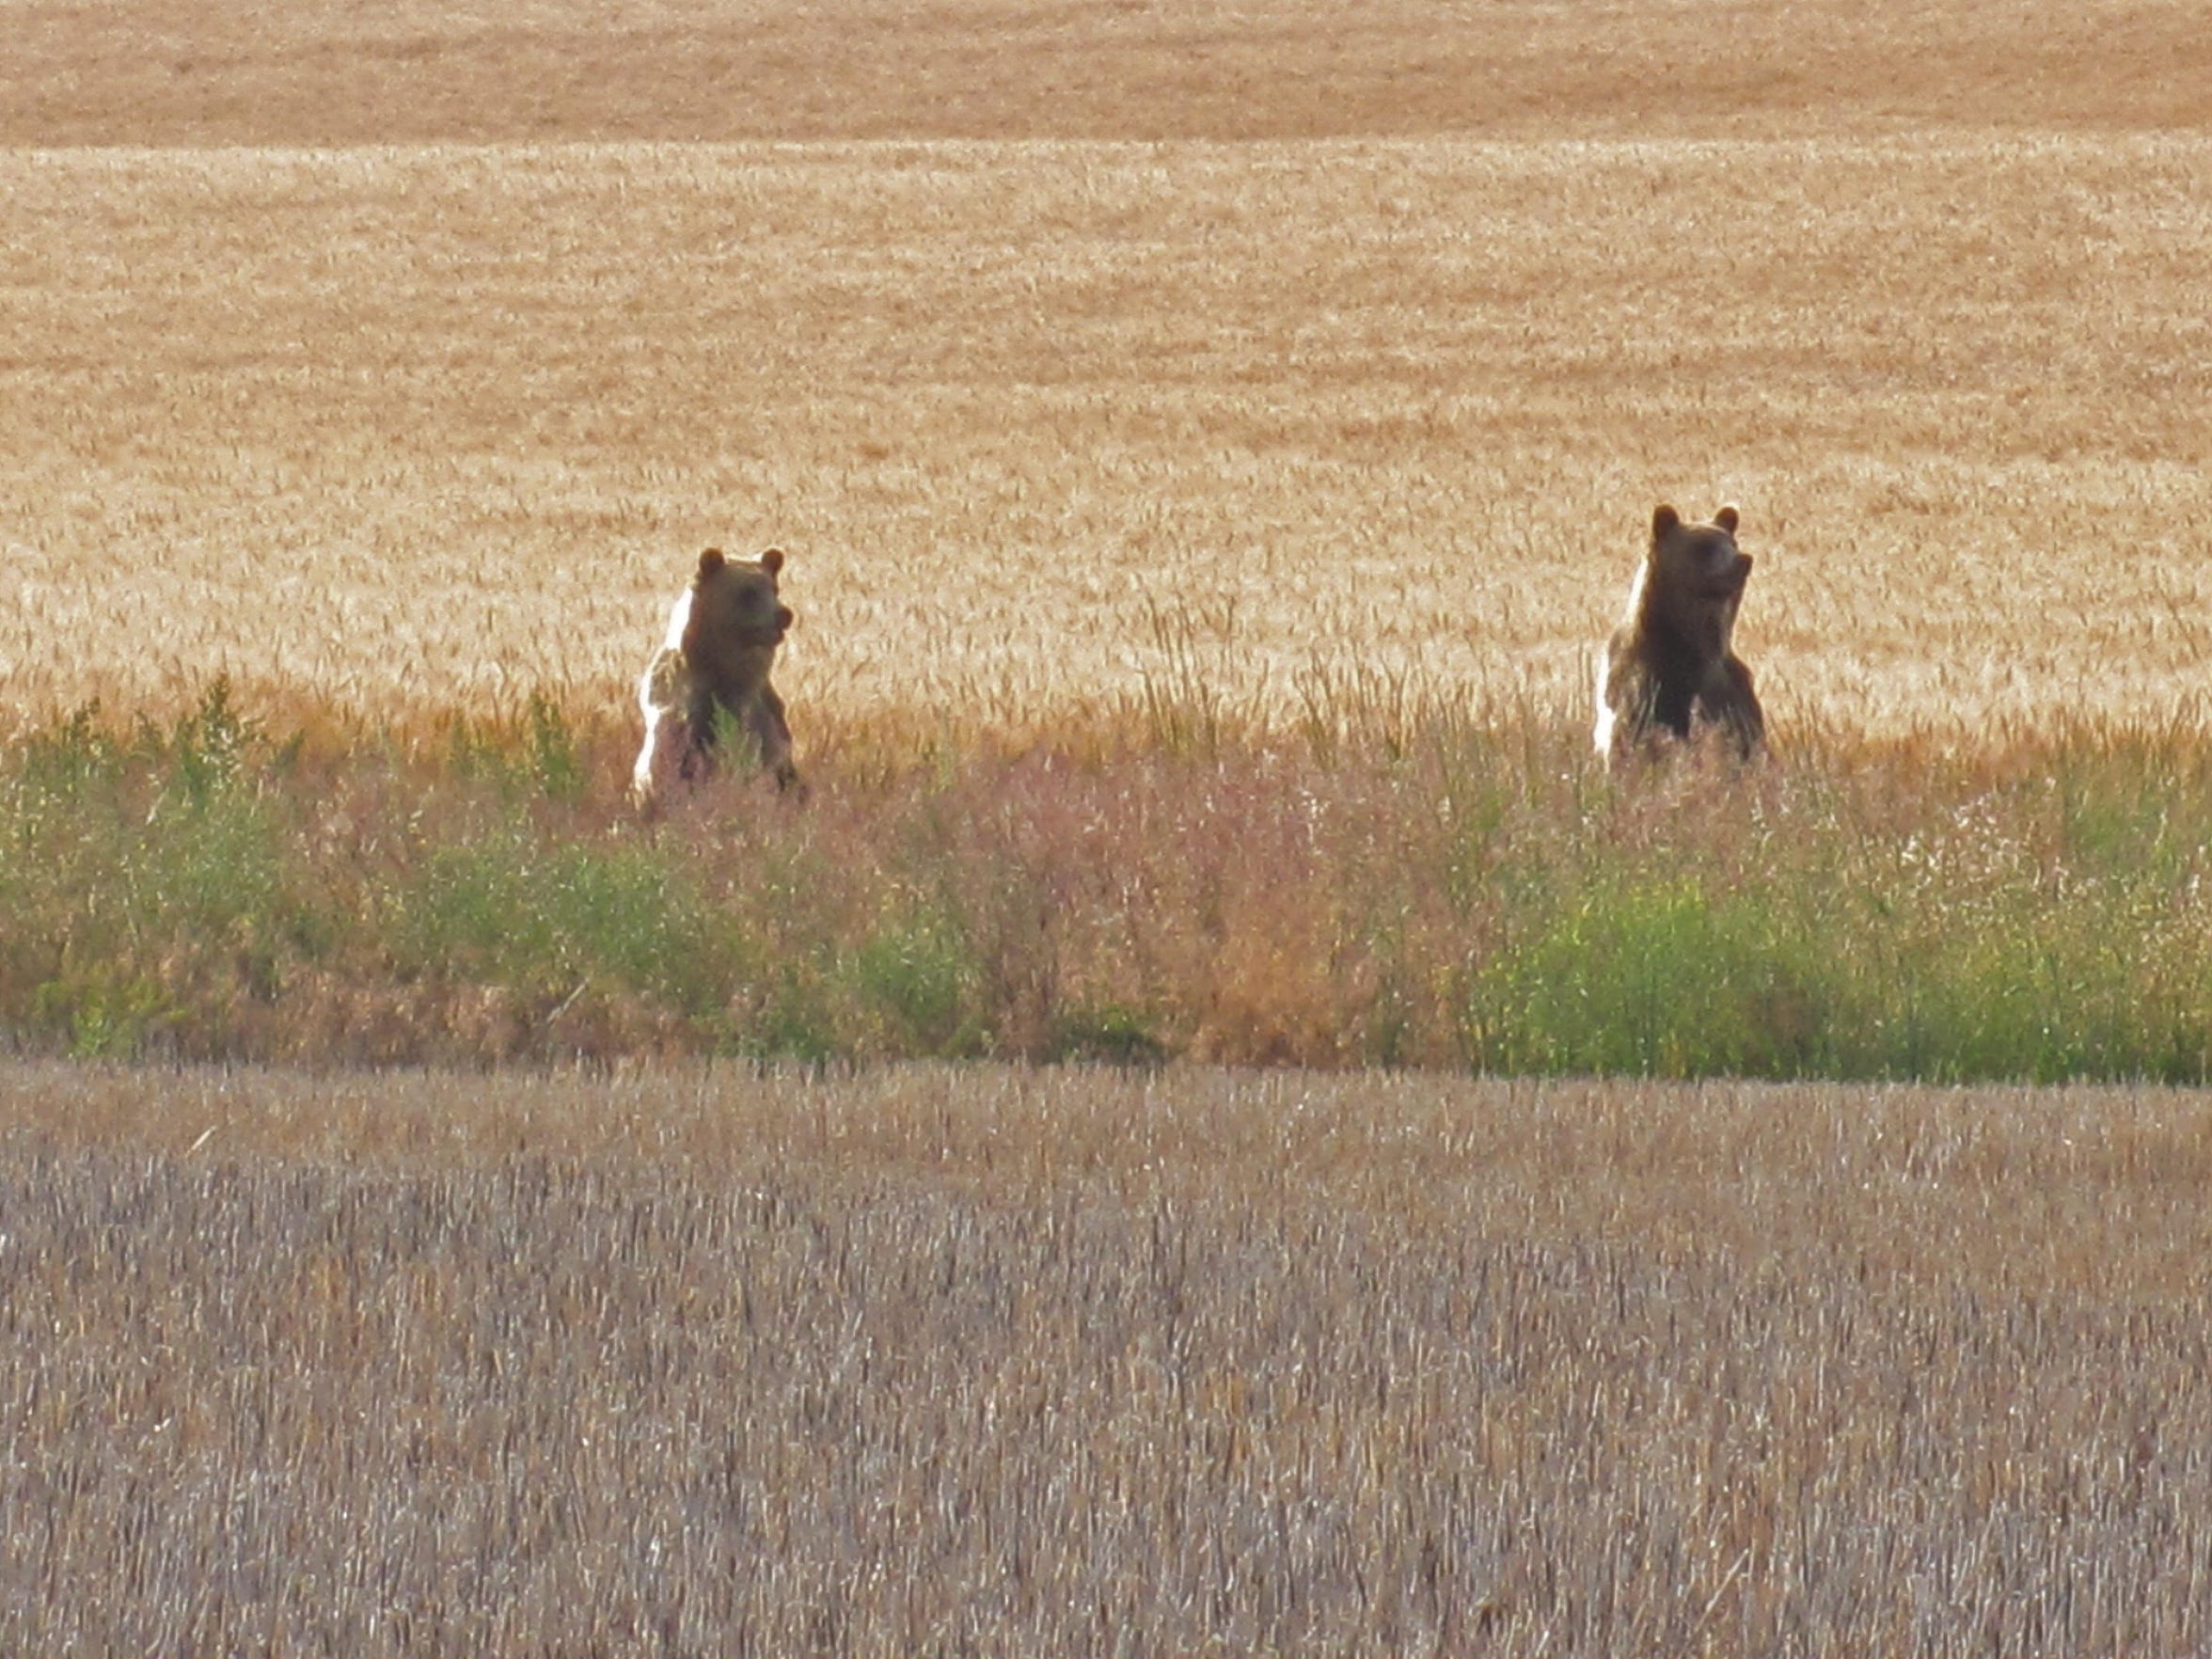 Two young grizzly bears were seen between two farm